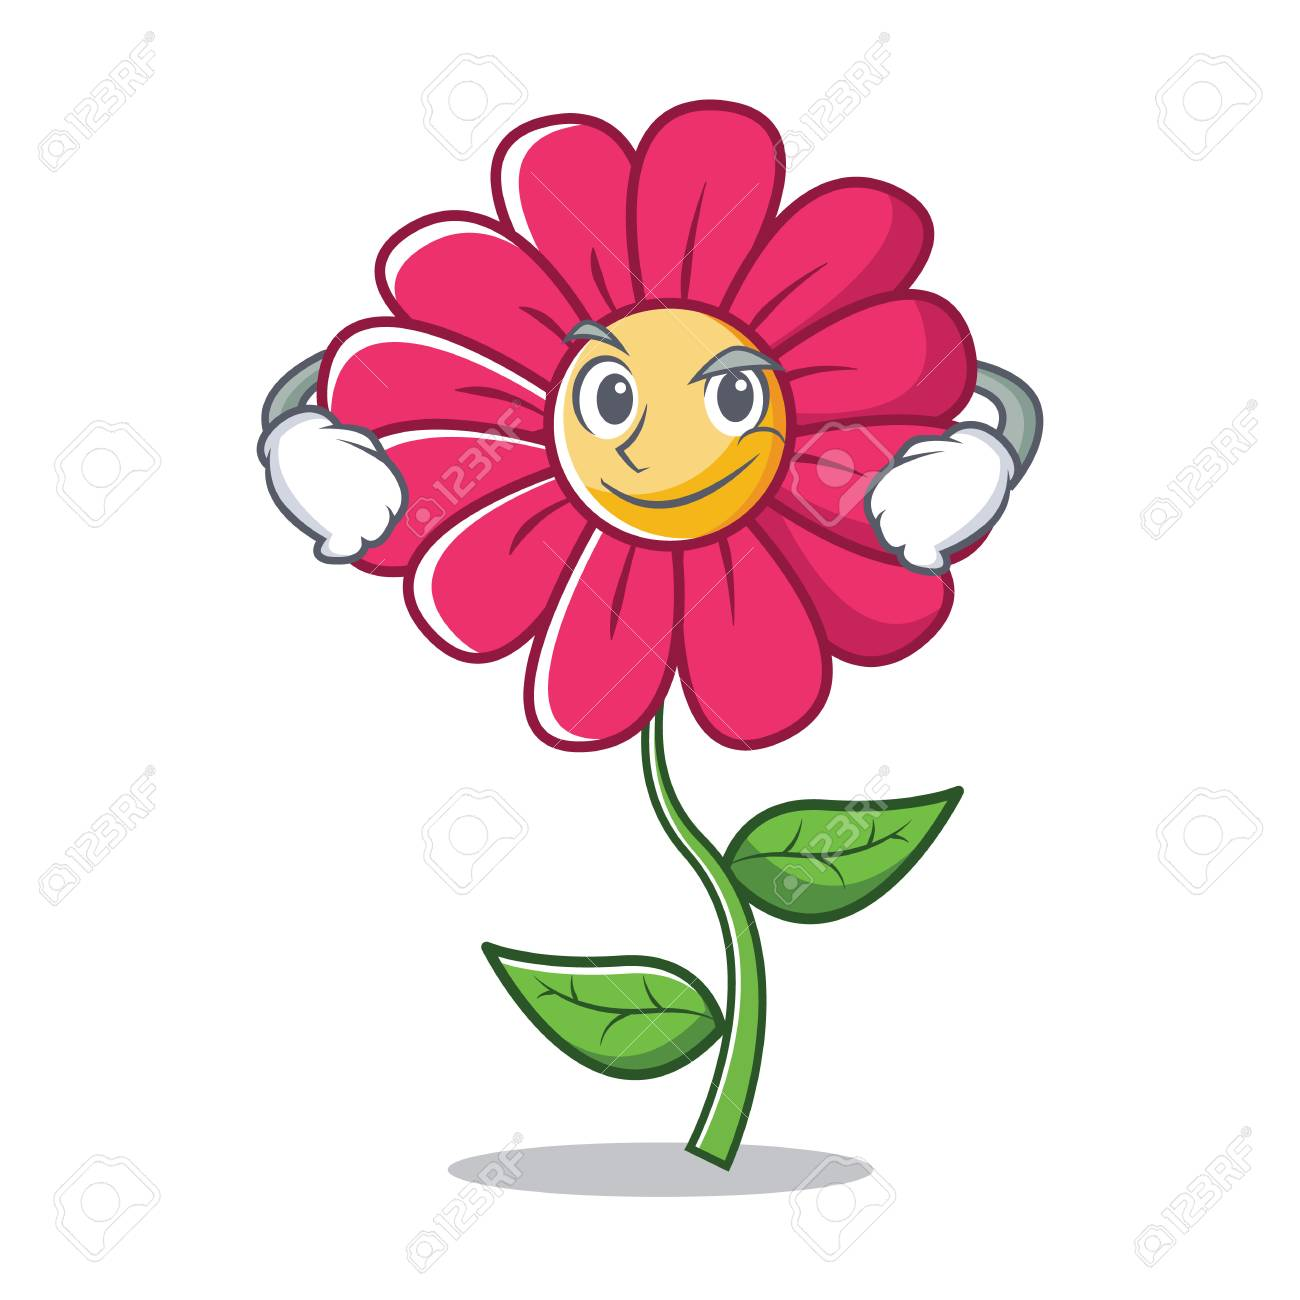 Smirking Pink Flower Character Cartoon Royalty Free Cliparts